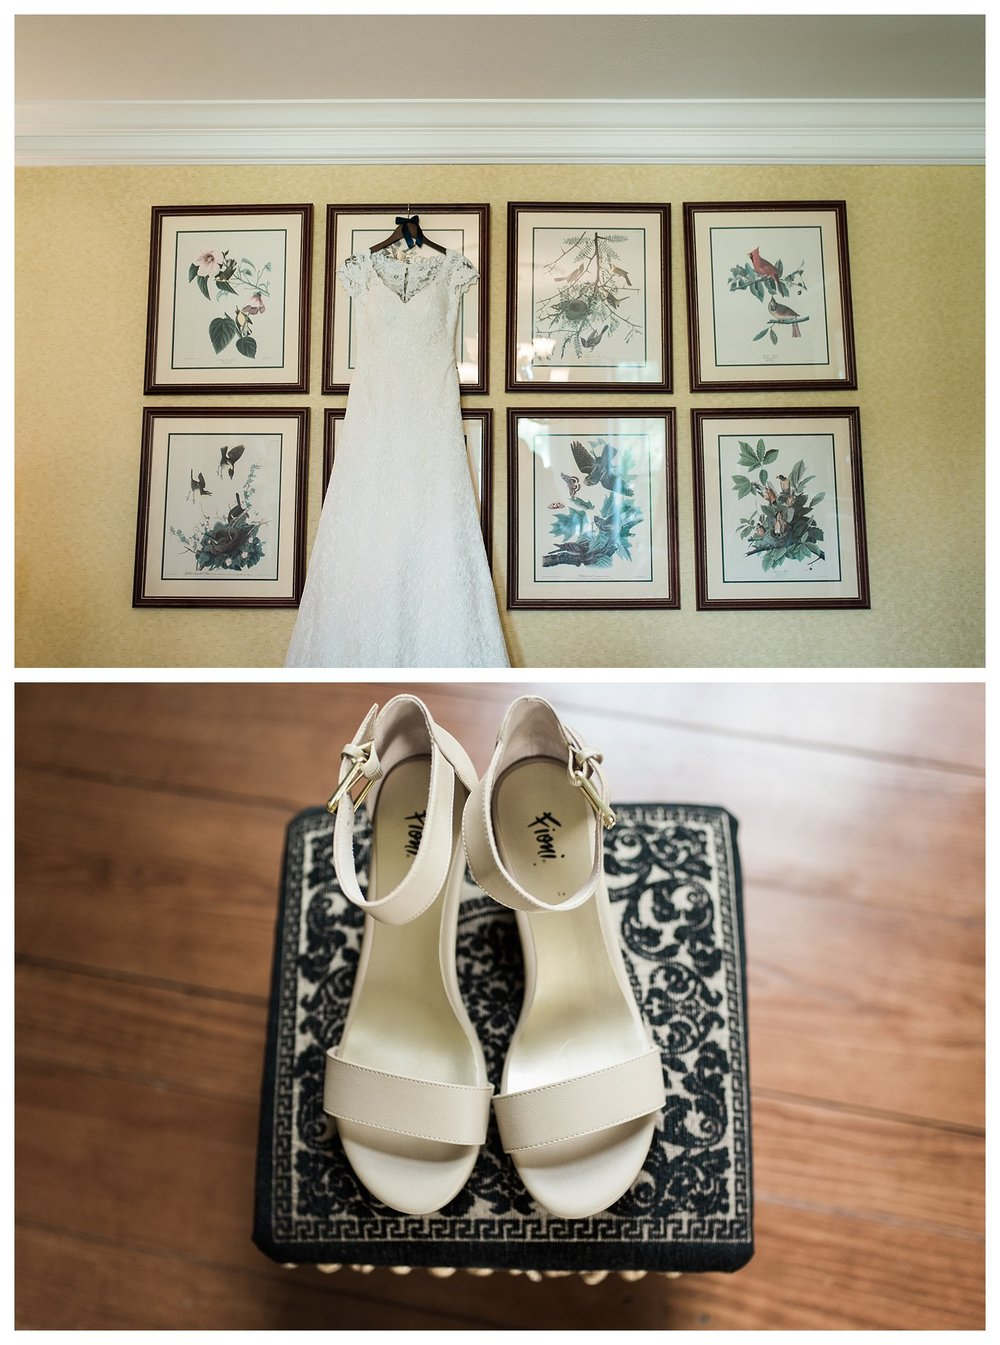 richwood-on-the-river-everleigh-photography-roby-and-tabitha-foree-wedding-06